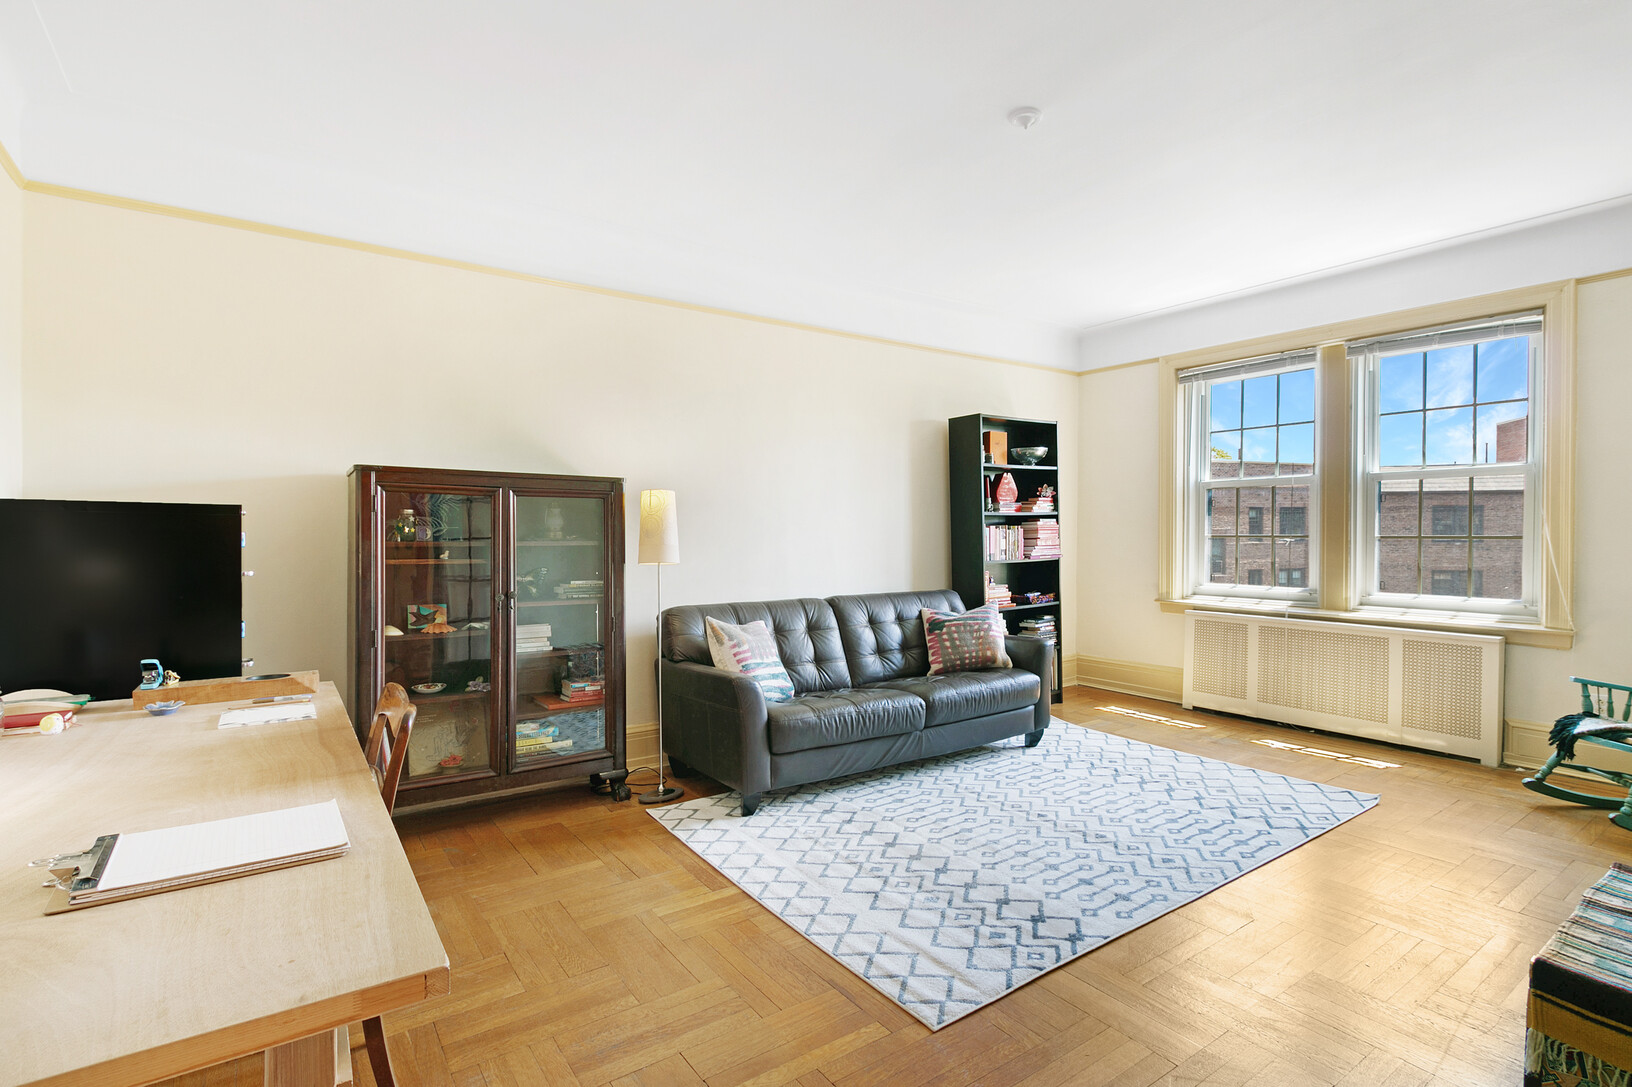 525 West 238th, Bronx, Bronx, New York, United States 10463, 1 Bedroom Bedrooms, ,1 BathroomBathrooms,Co-op,FOR SALE,Fieldston Garden Apartments,West 238th,1169